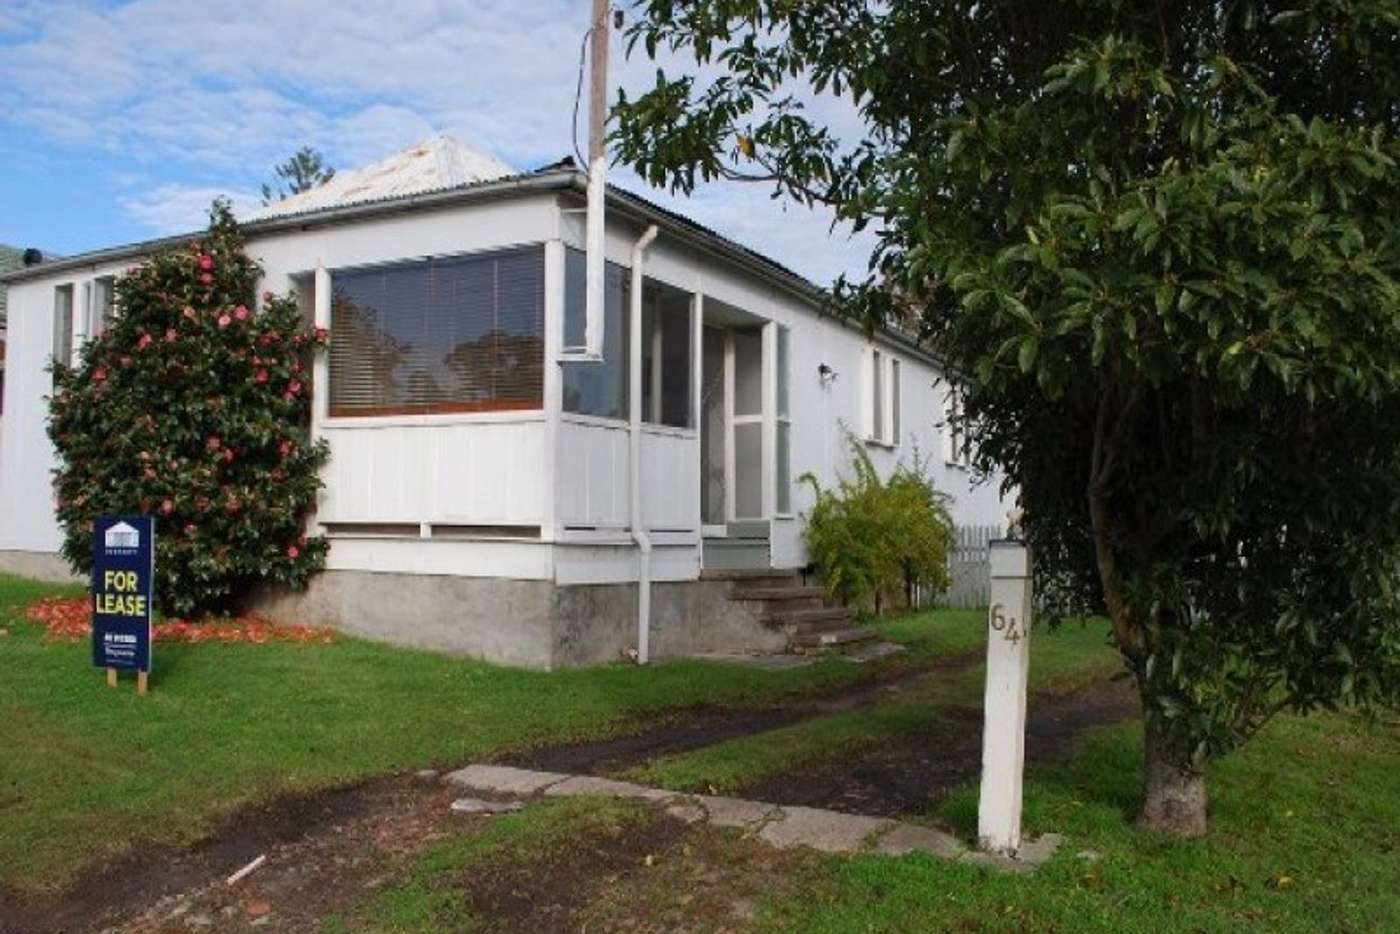 Main view of Homely house listing, 64 Withers Street, West Wallsend NSW 2286